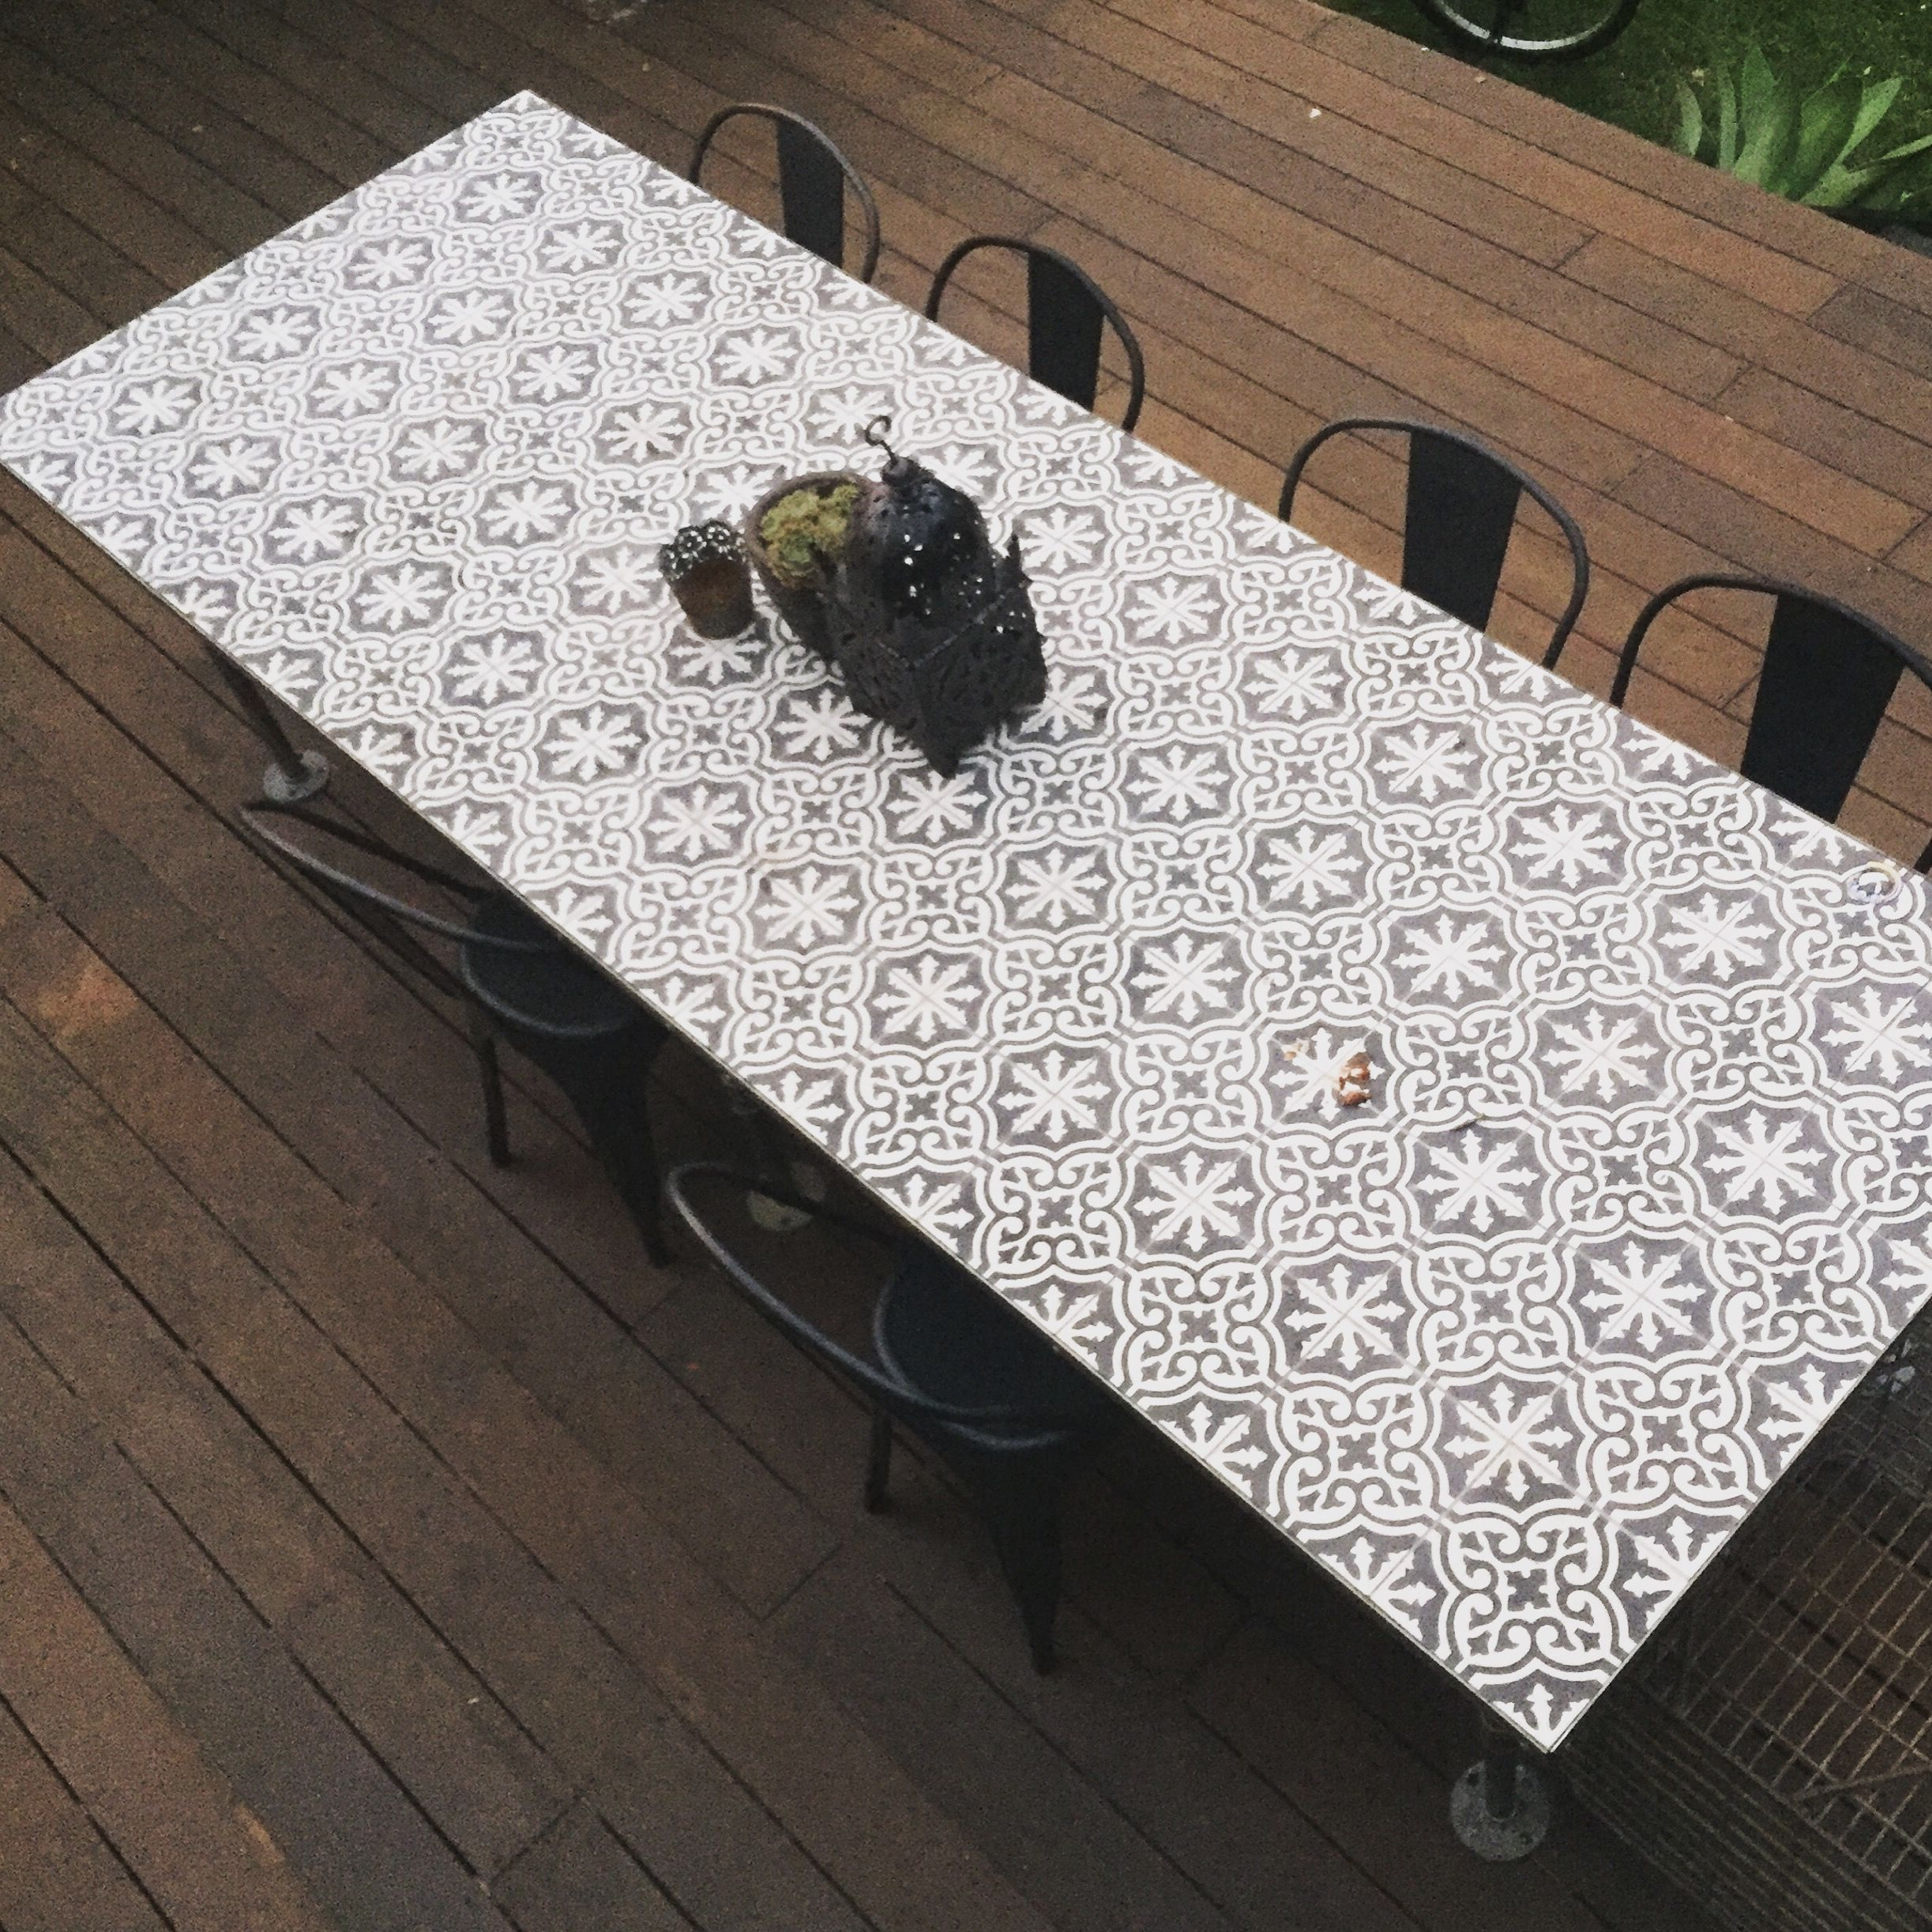 Custom Moroccan Tiled Table Top With Plumbing Piped Legs Made By